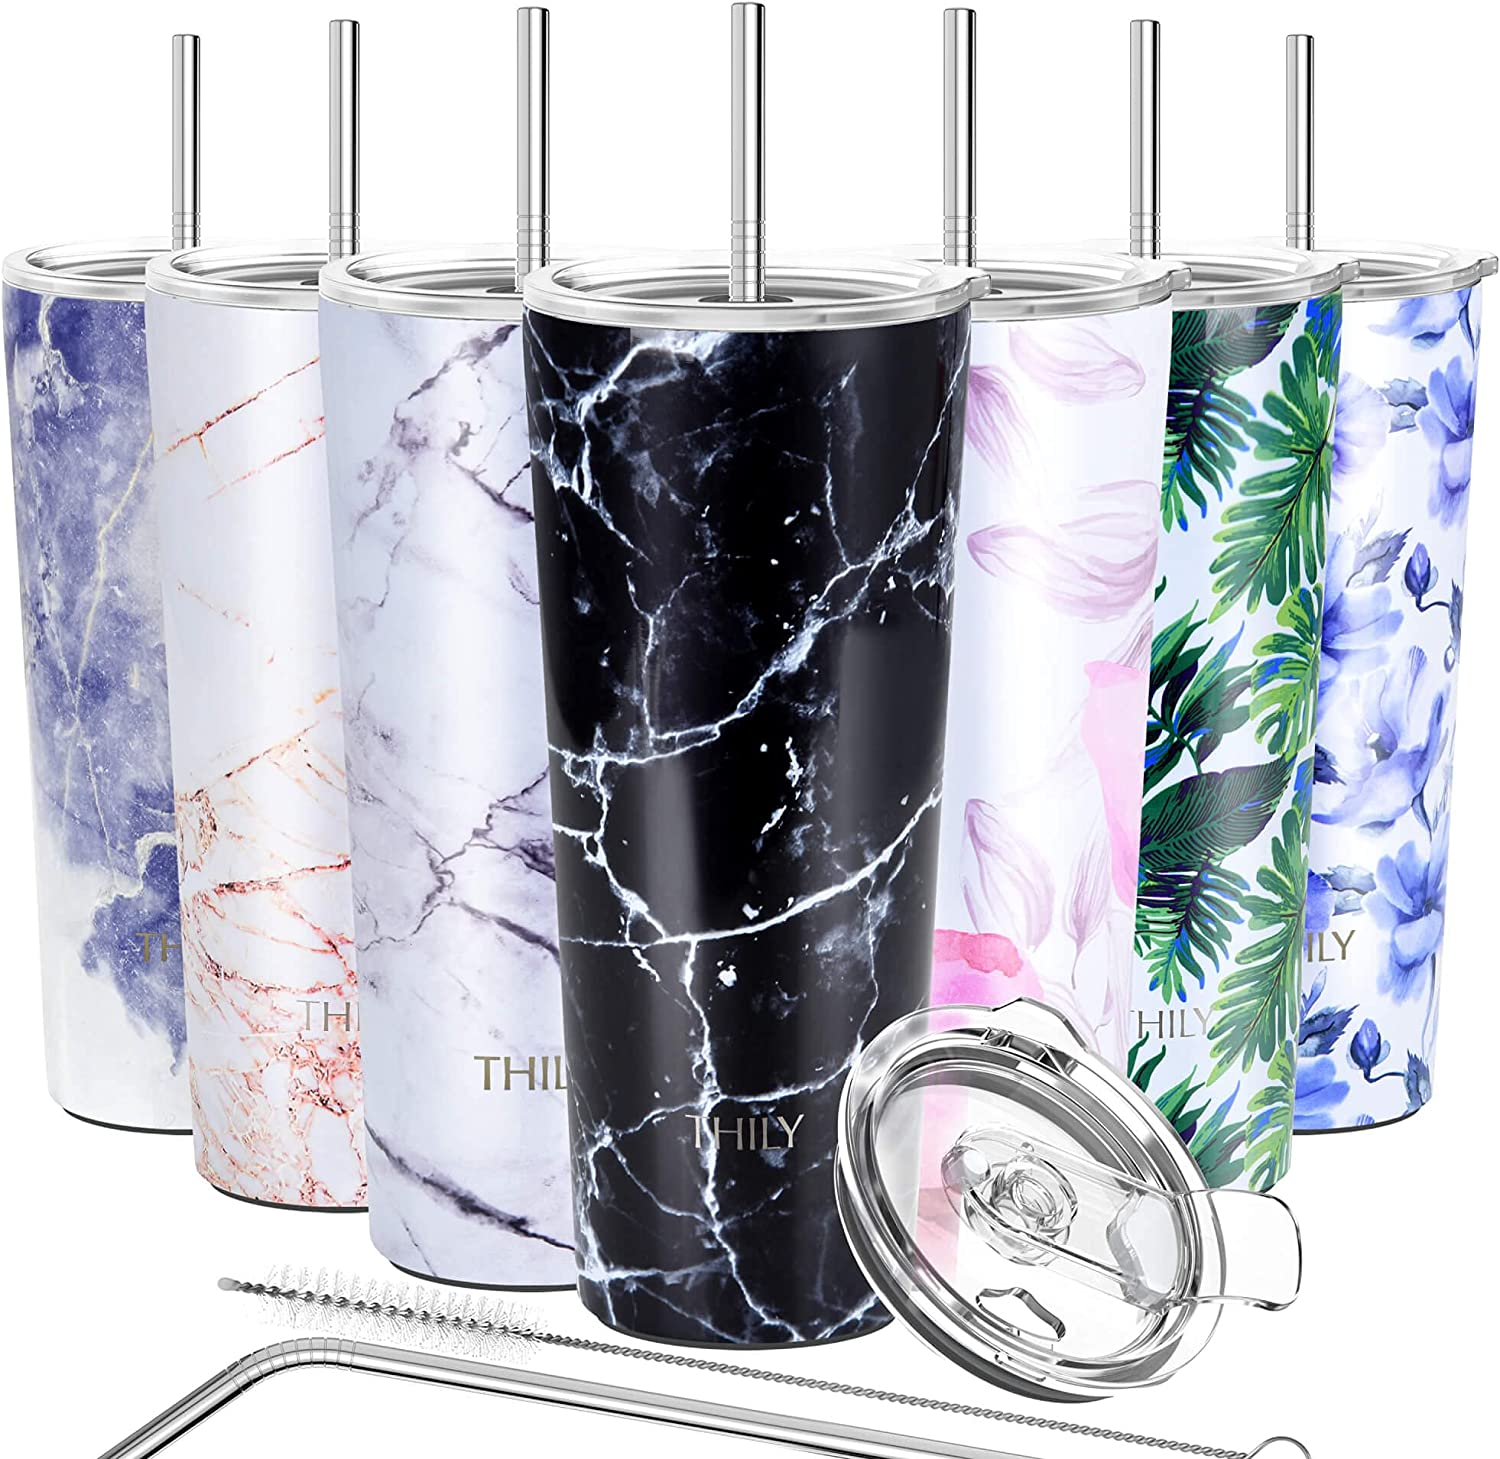 Stainless Steel Vacuum Insulated Tumbler - THILY Travel Mug 26 oz Coffee Cup with 2 Lids and Straws, Splash Proof, Keep Ice Drinks Cold, Black Marble